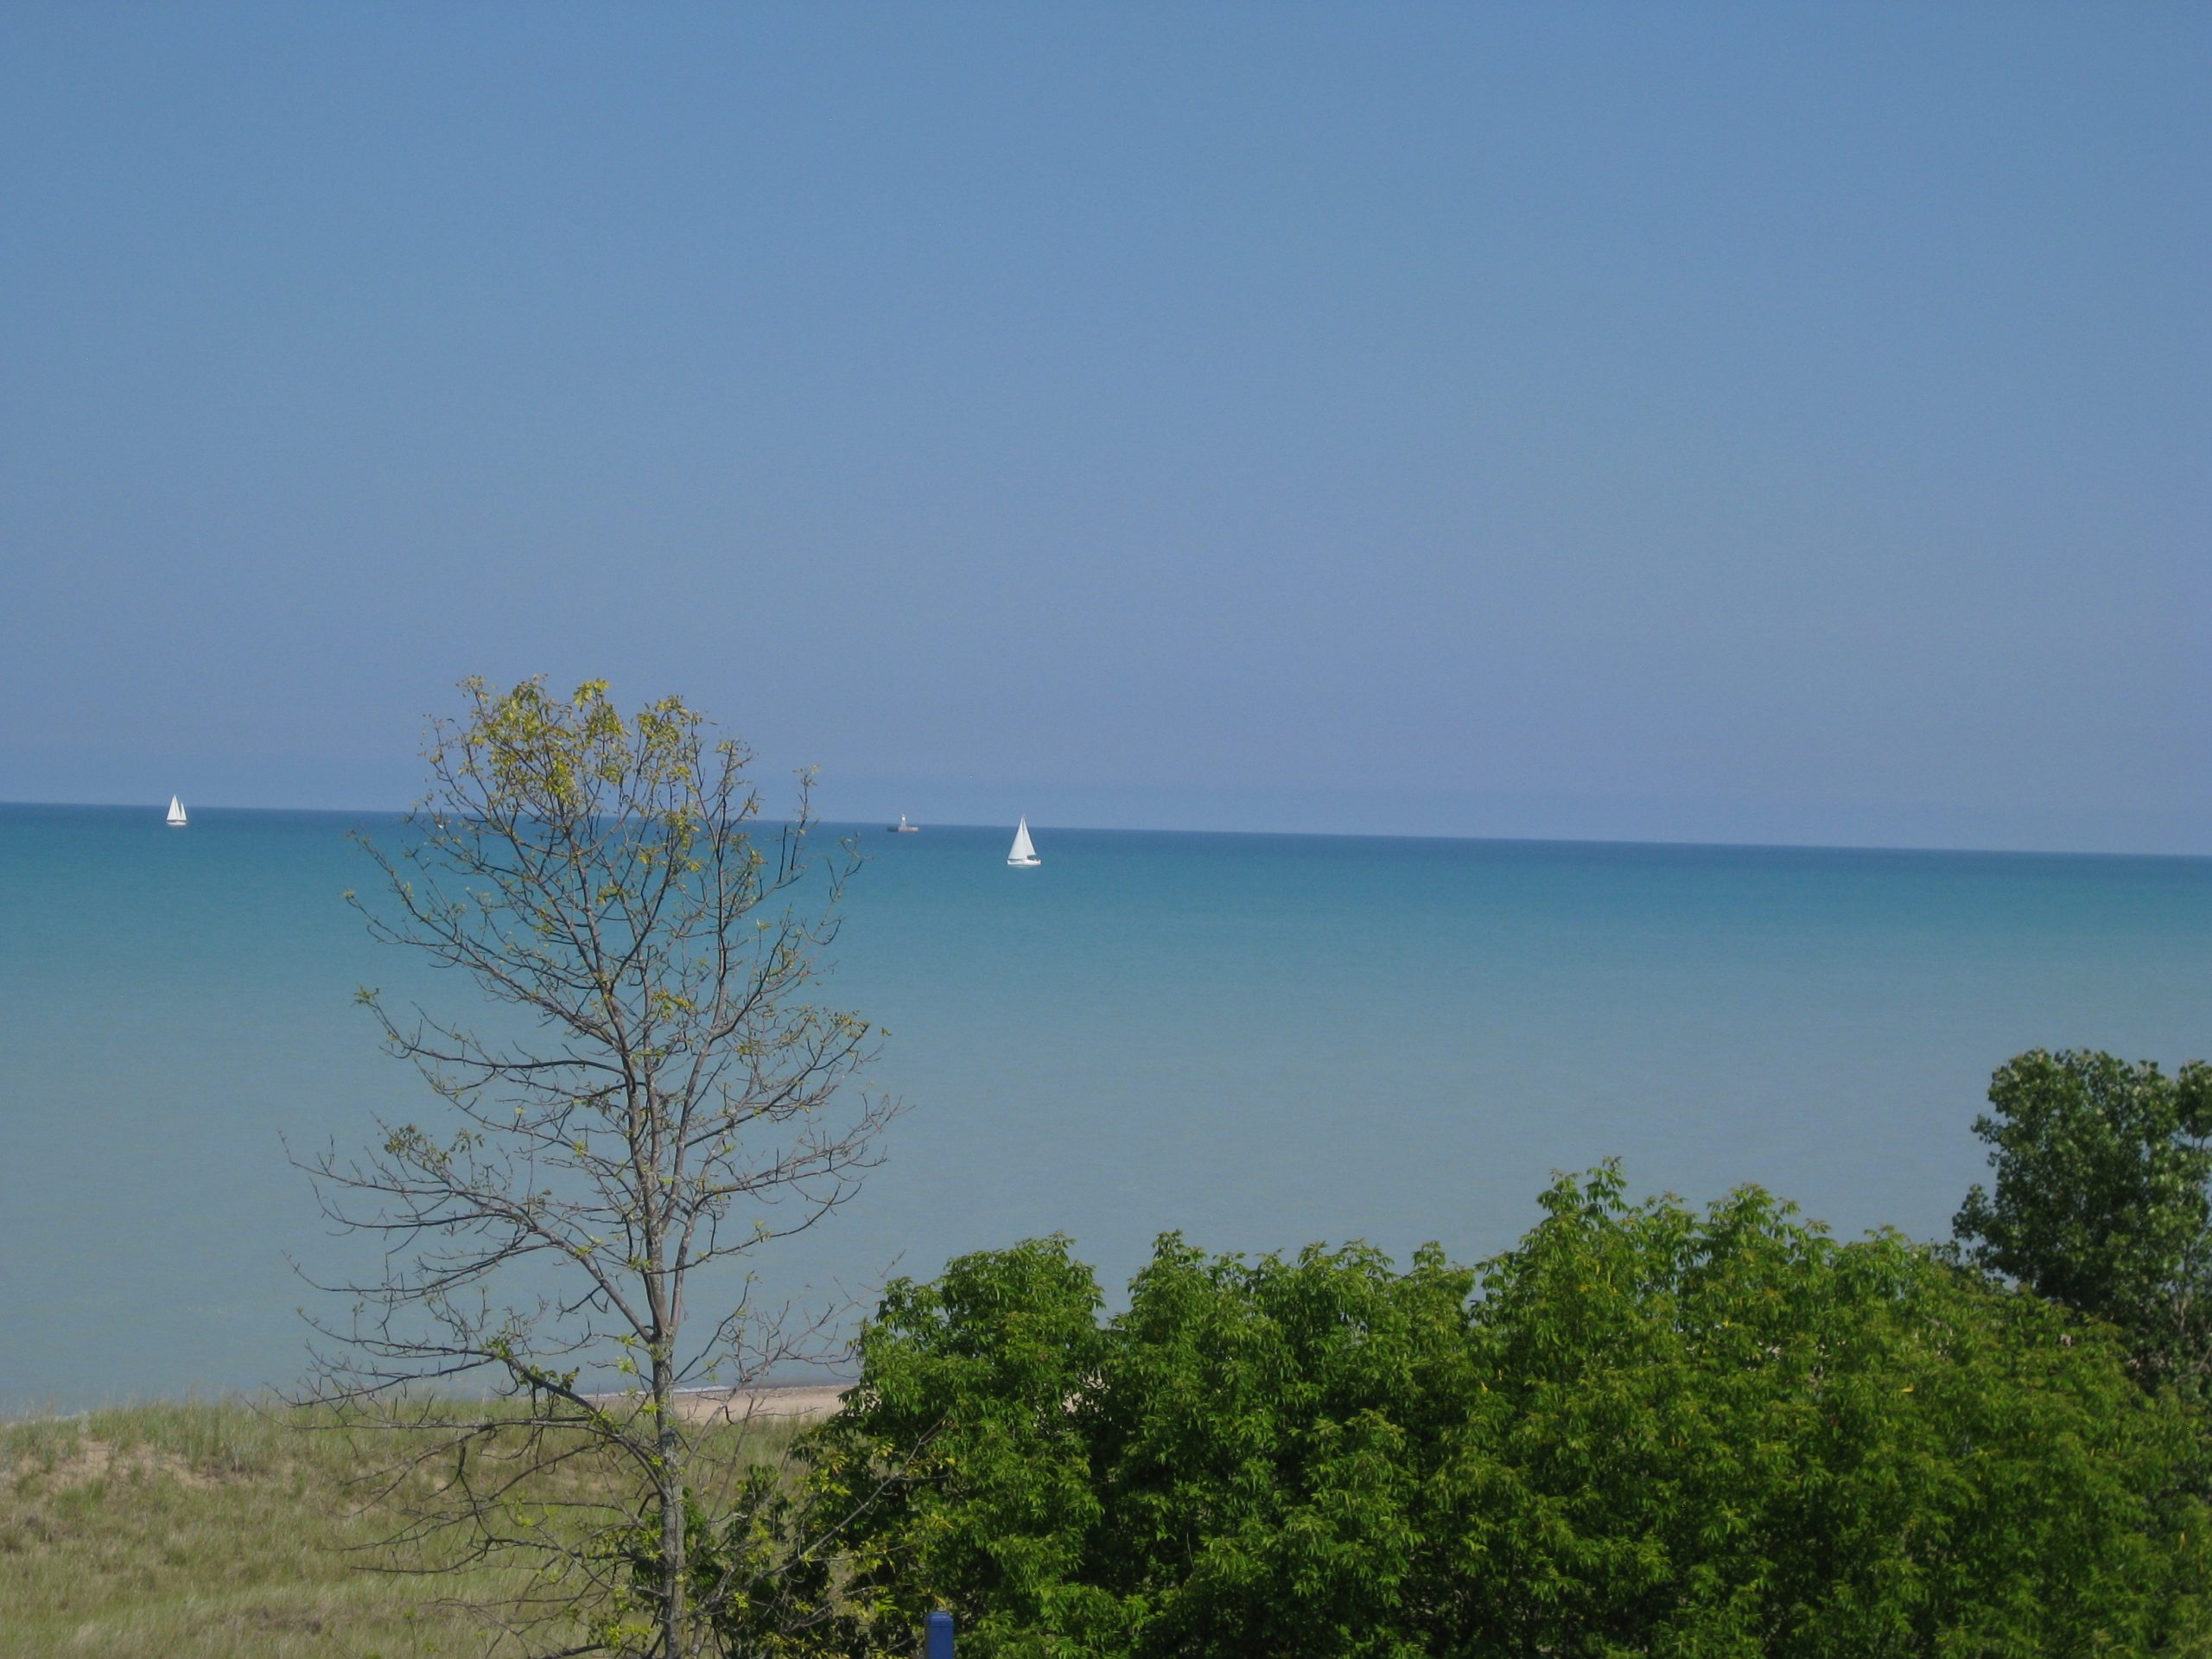 Summertime views from North Beach in Racine, Wisconsin, where I used to go swimming.